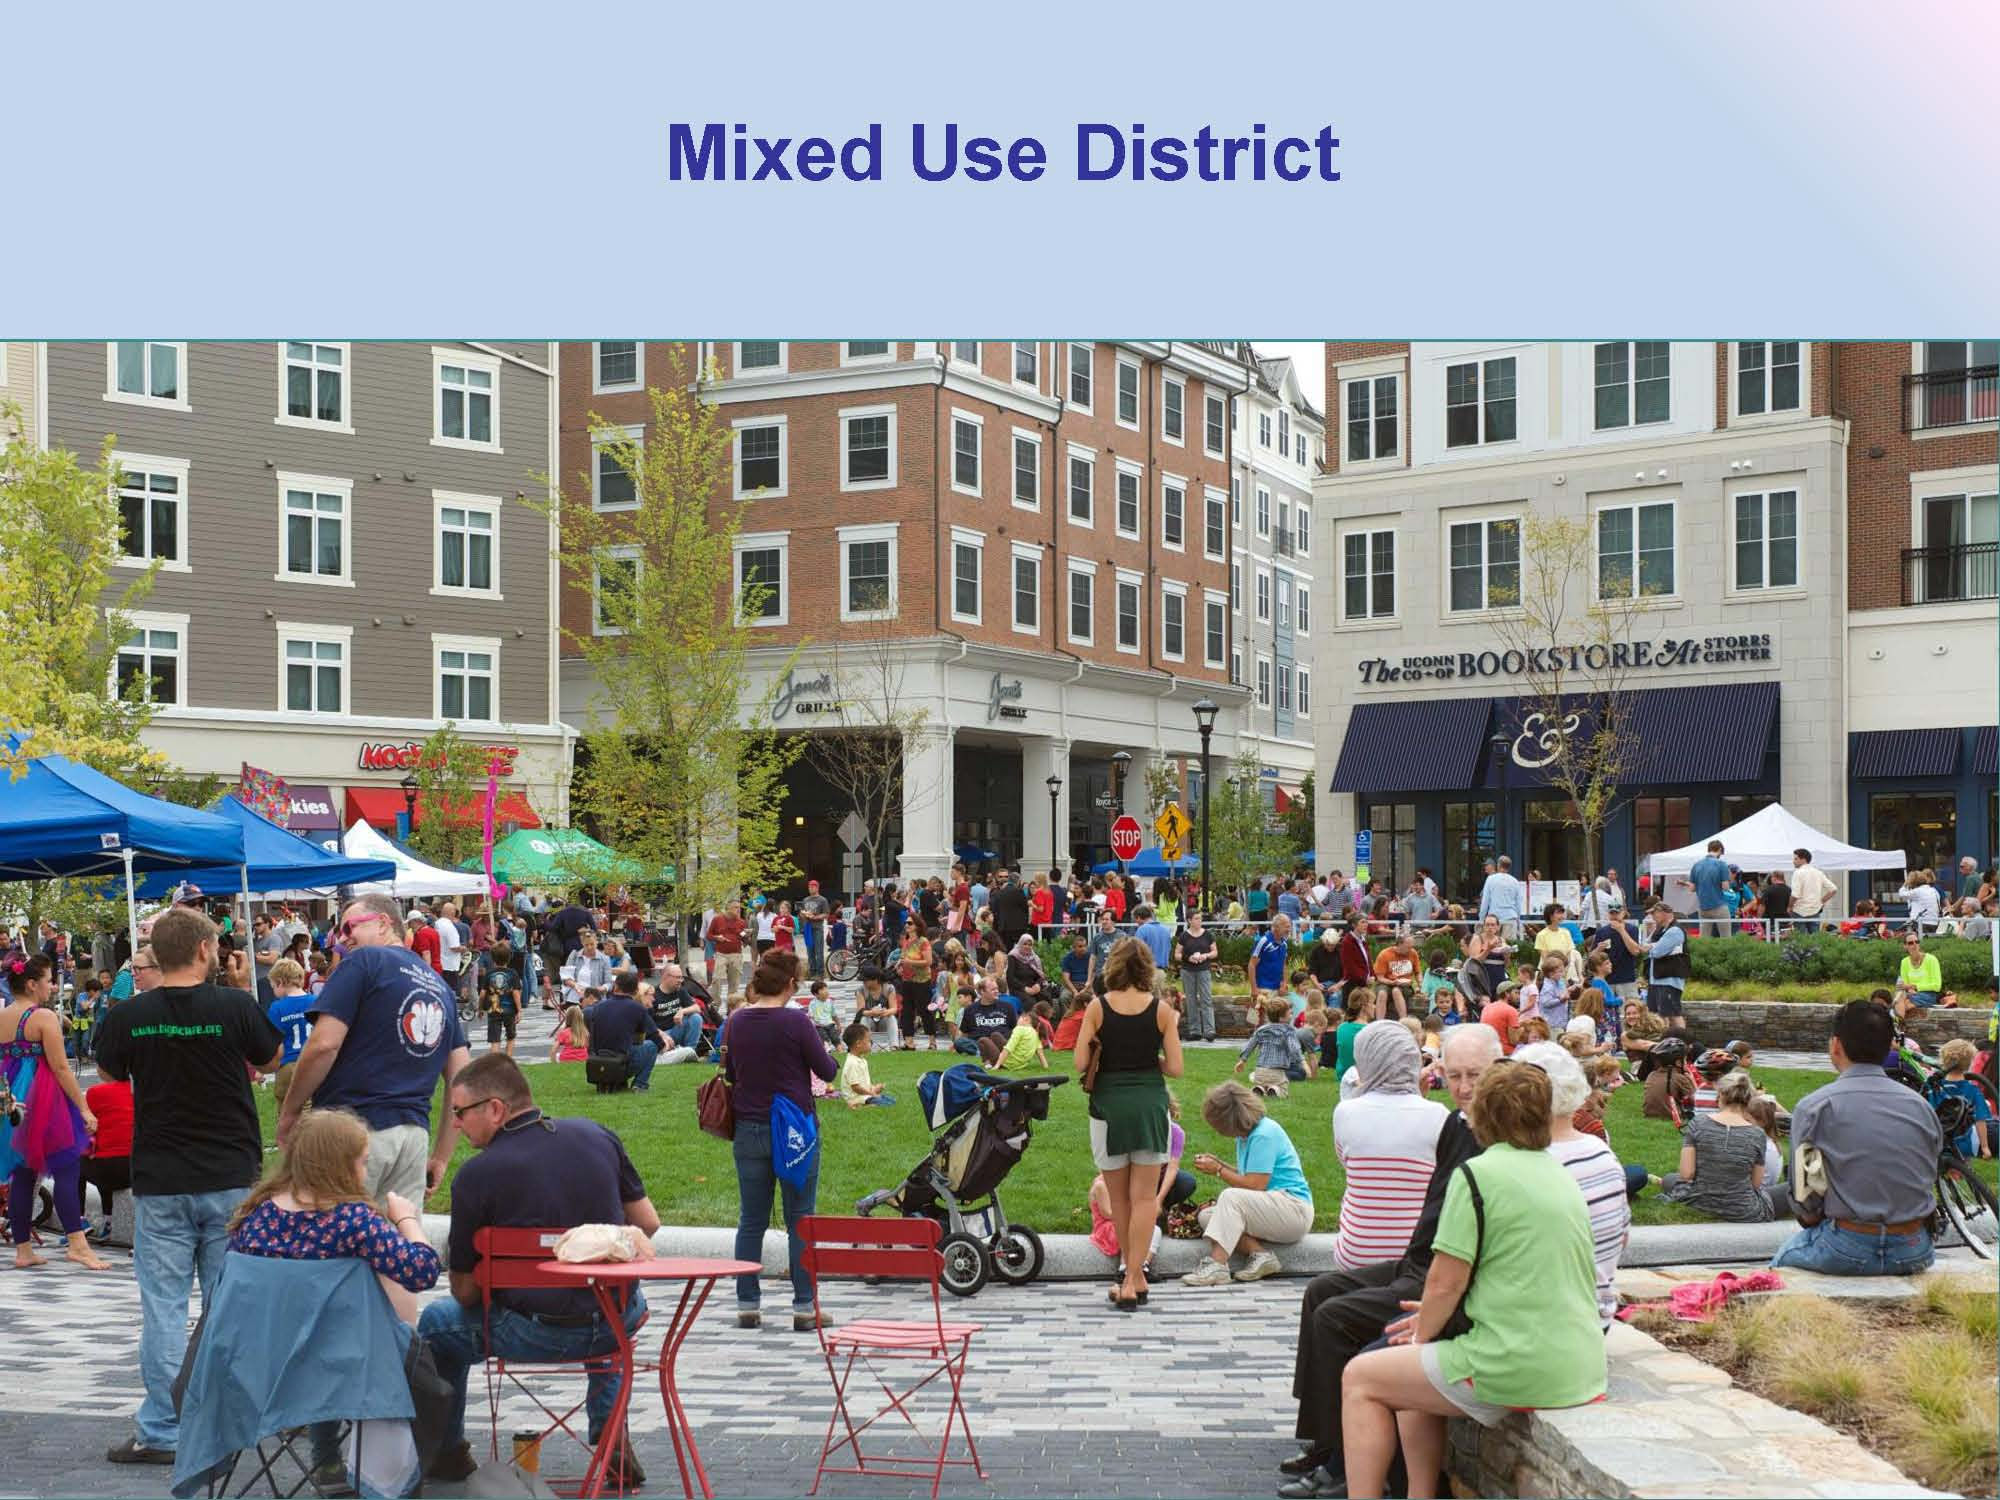 Groton_Mixed-Use_Page_05.jpg